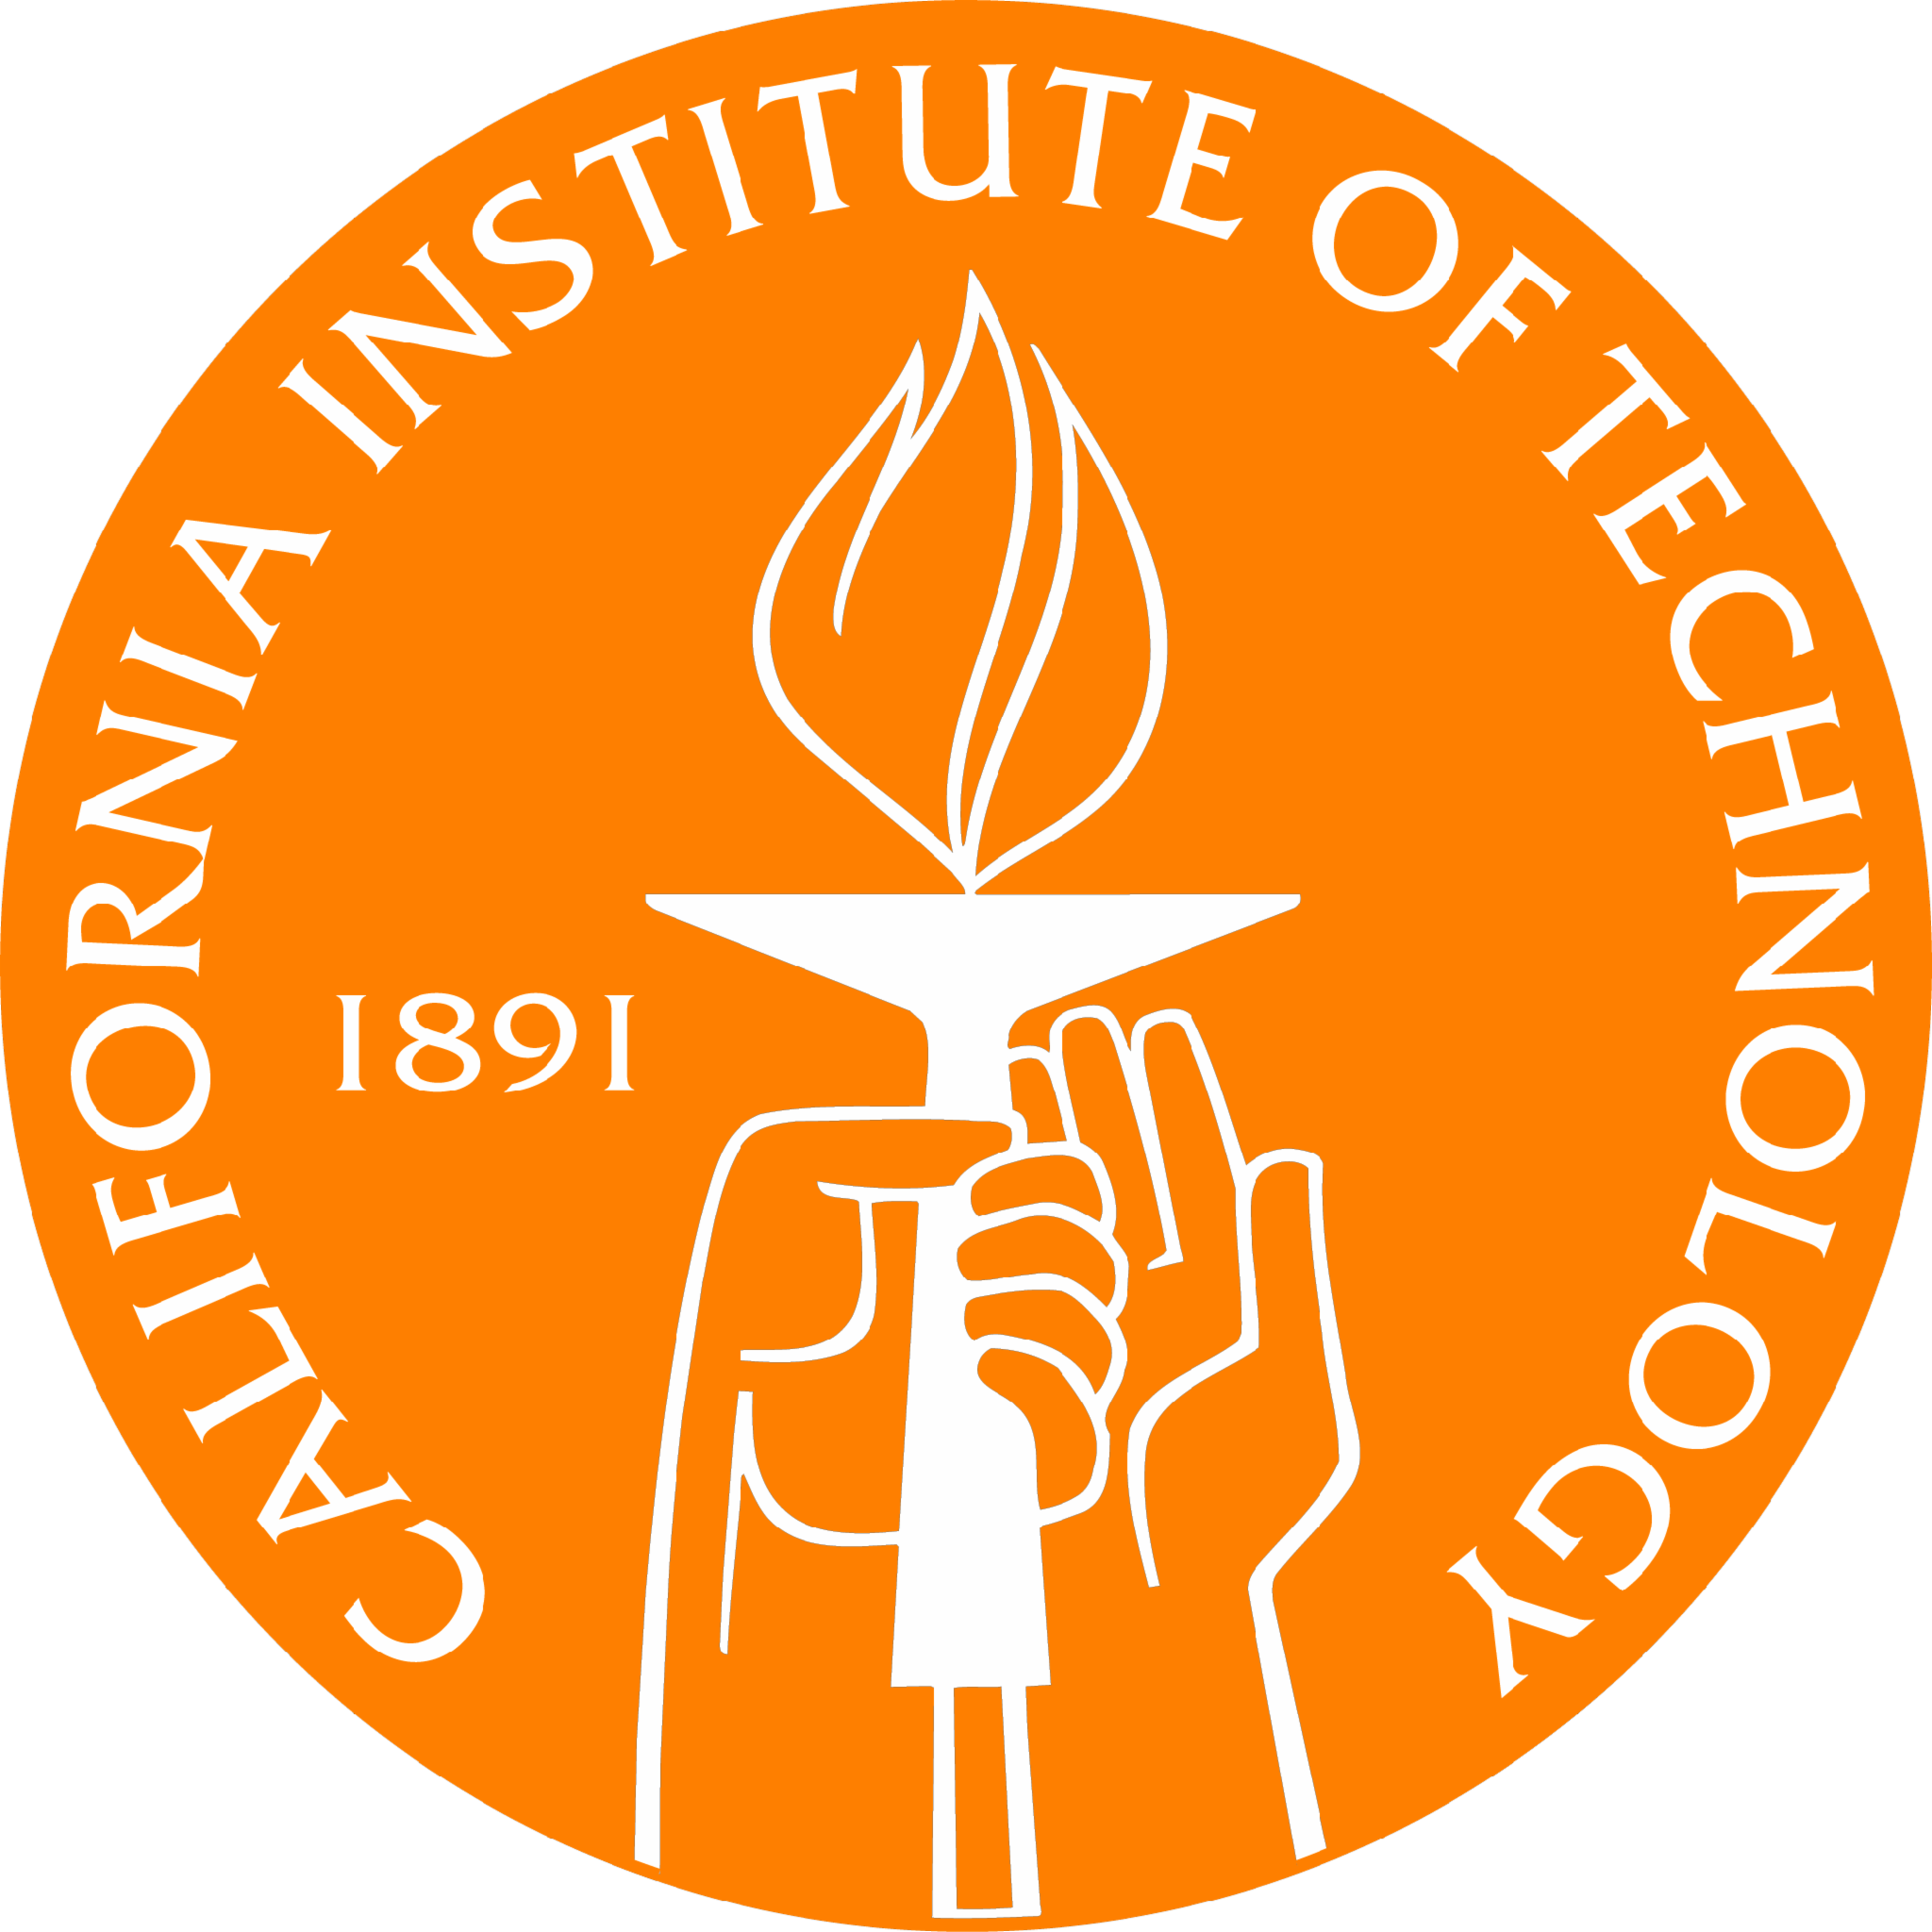 CalTech- California Institute of Technology